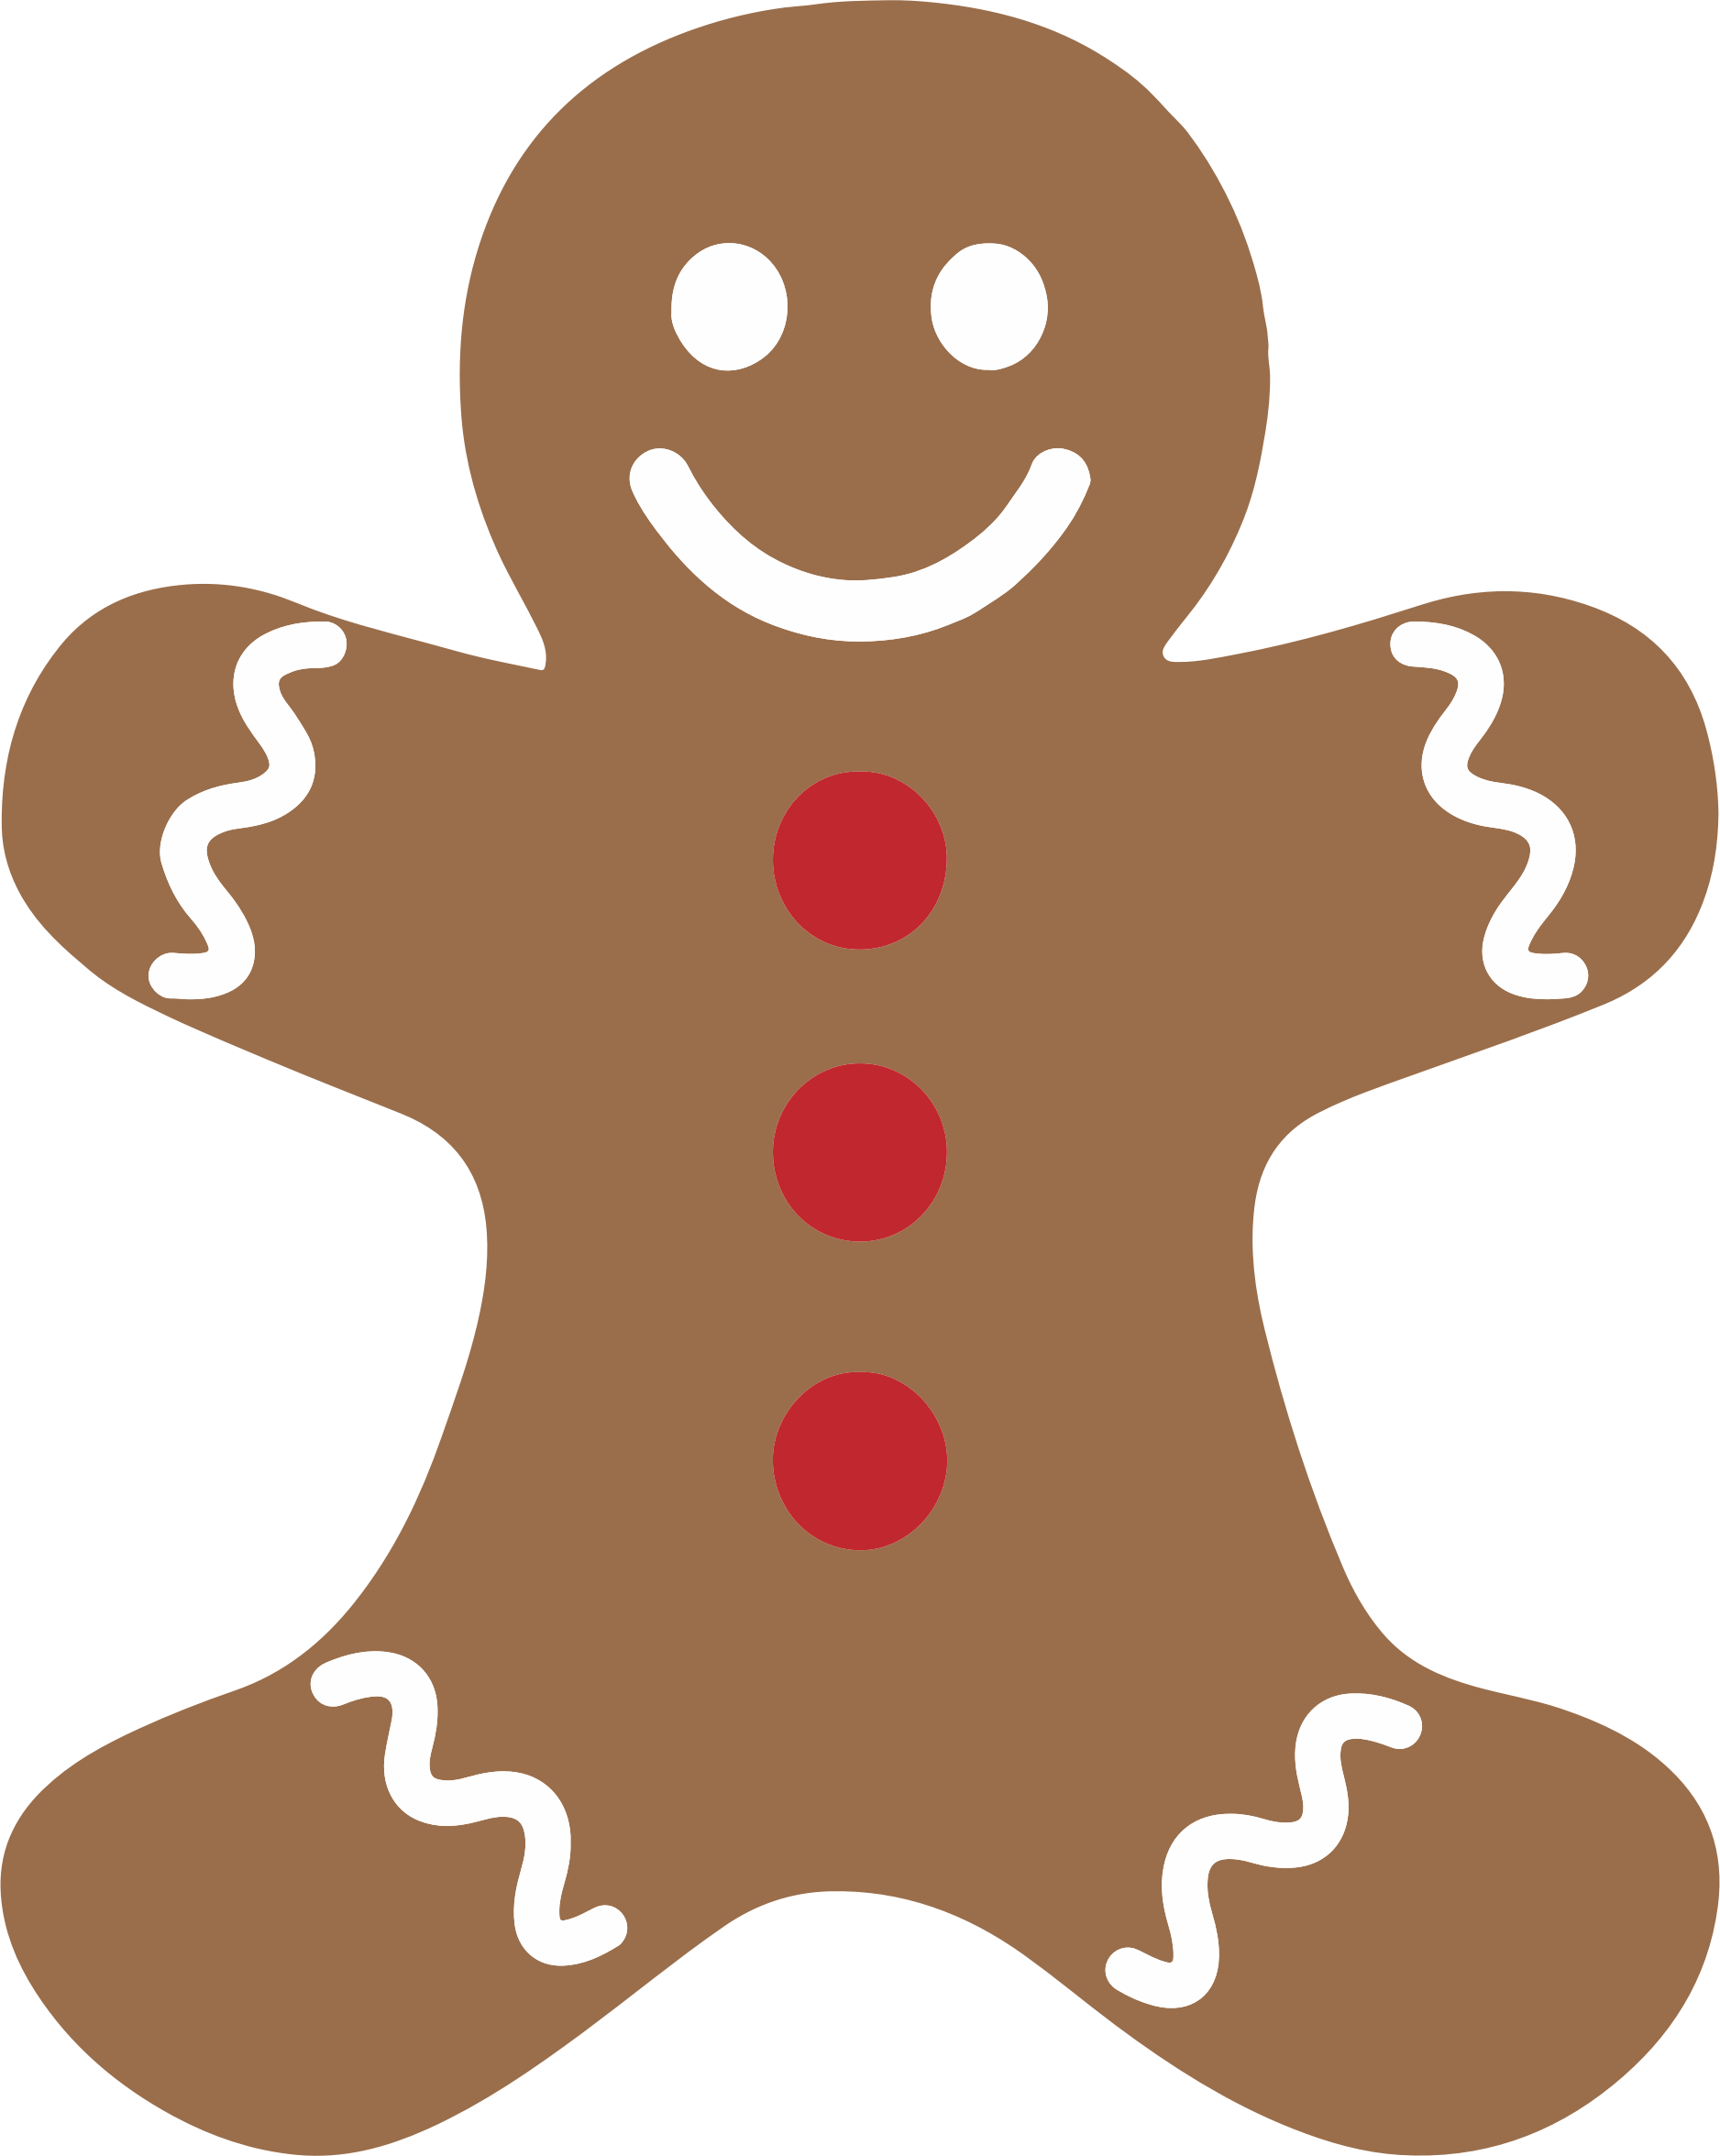 Man by gdj images. Lollipop clipart gingerbread